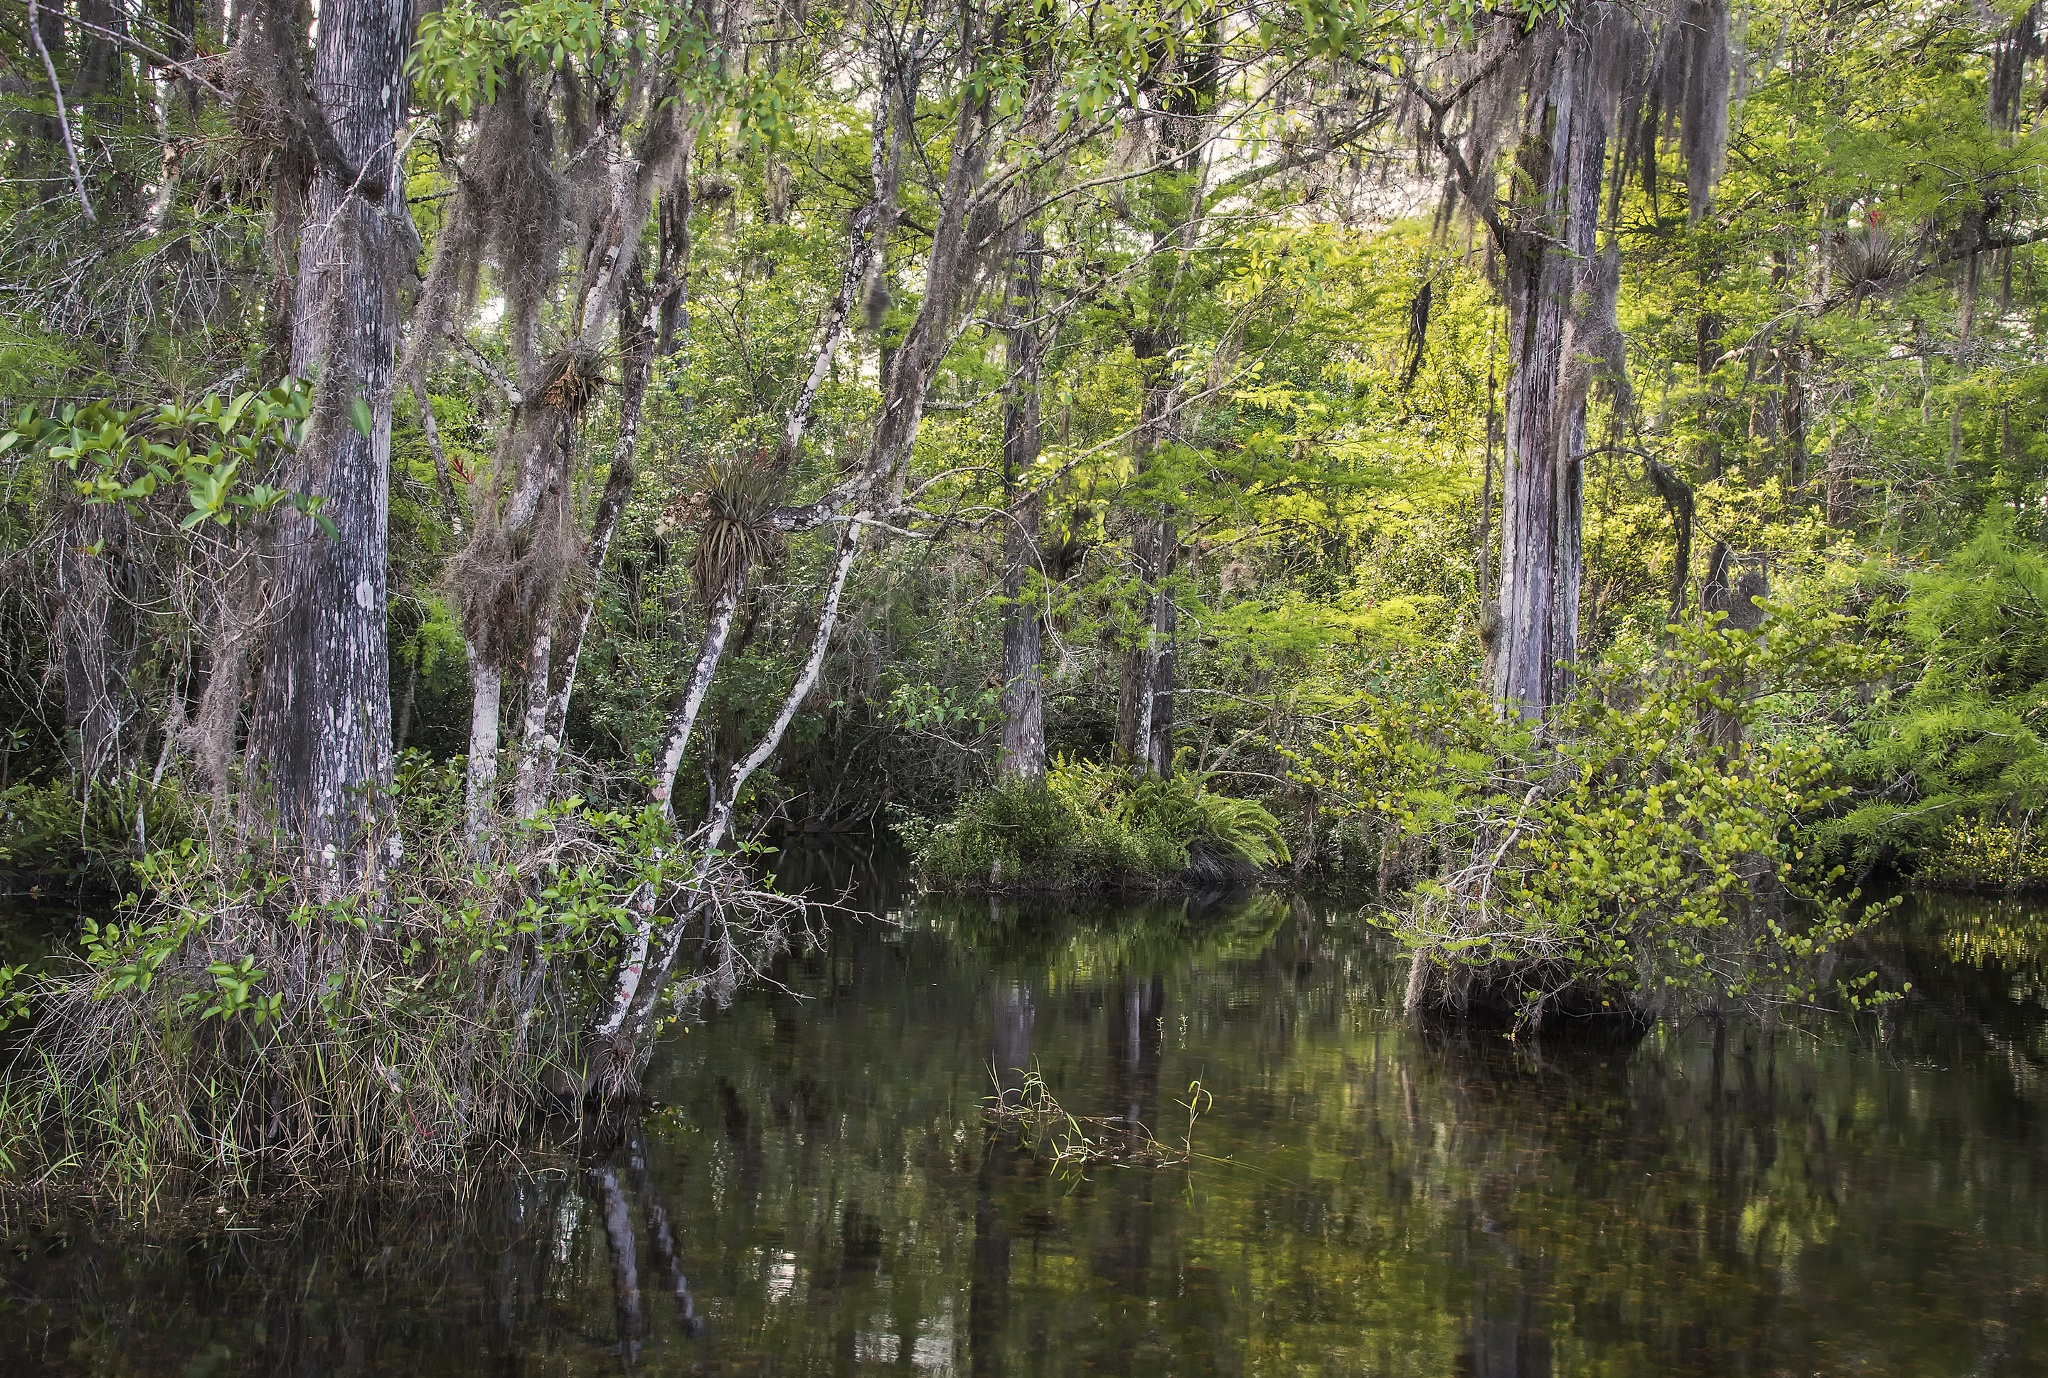 Big Cypress Swamp, The Everglades, Florida by Doctoral